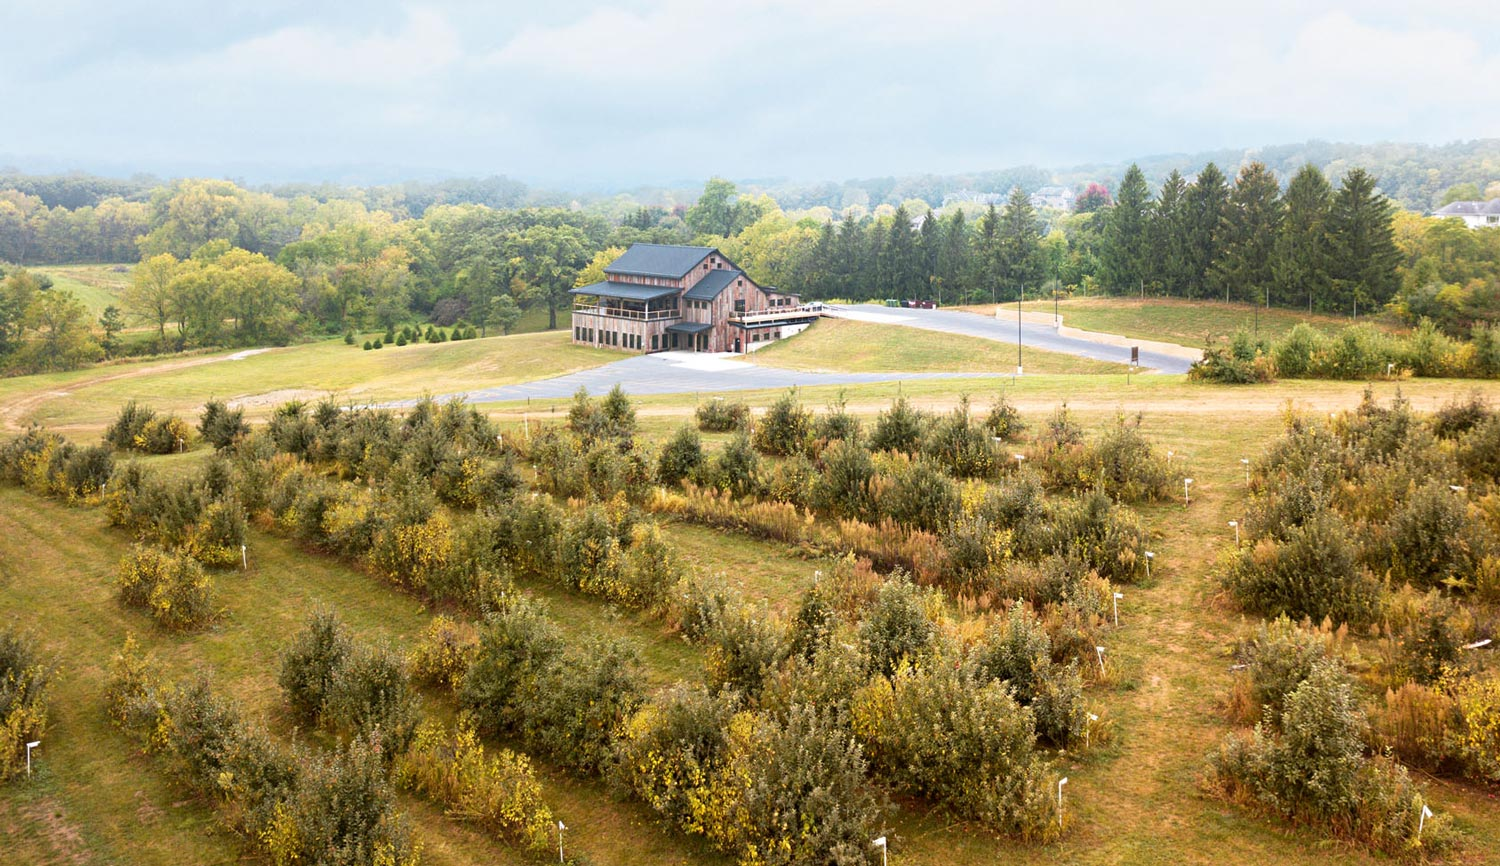 Wilson's Orchard overview